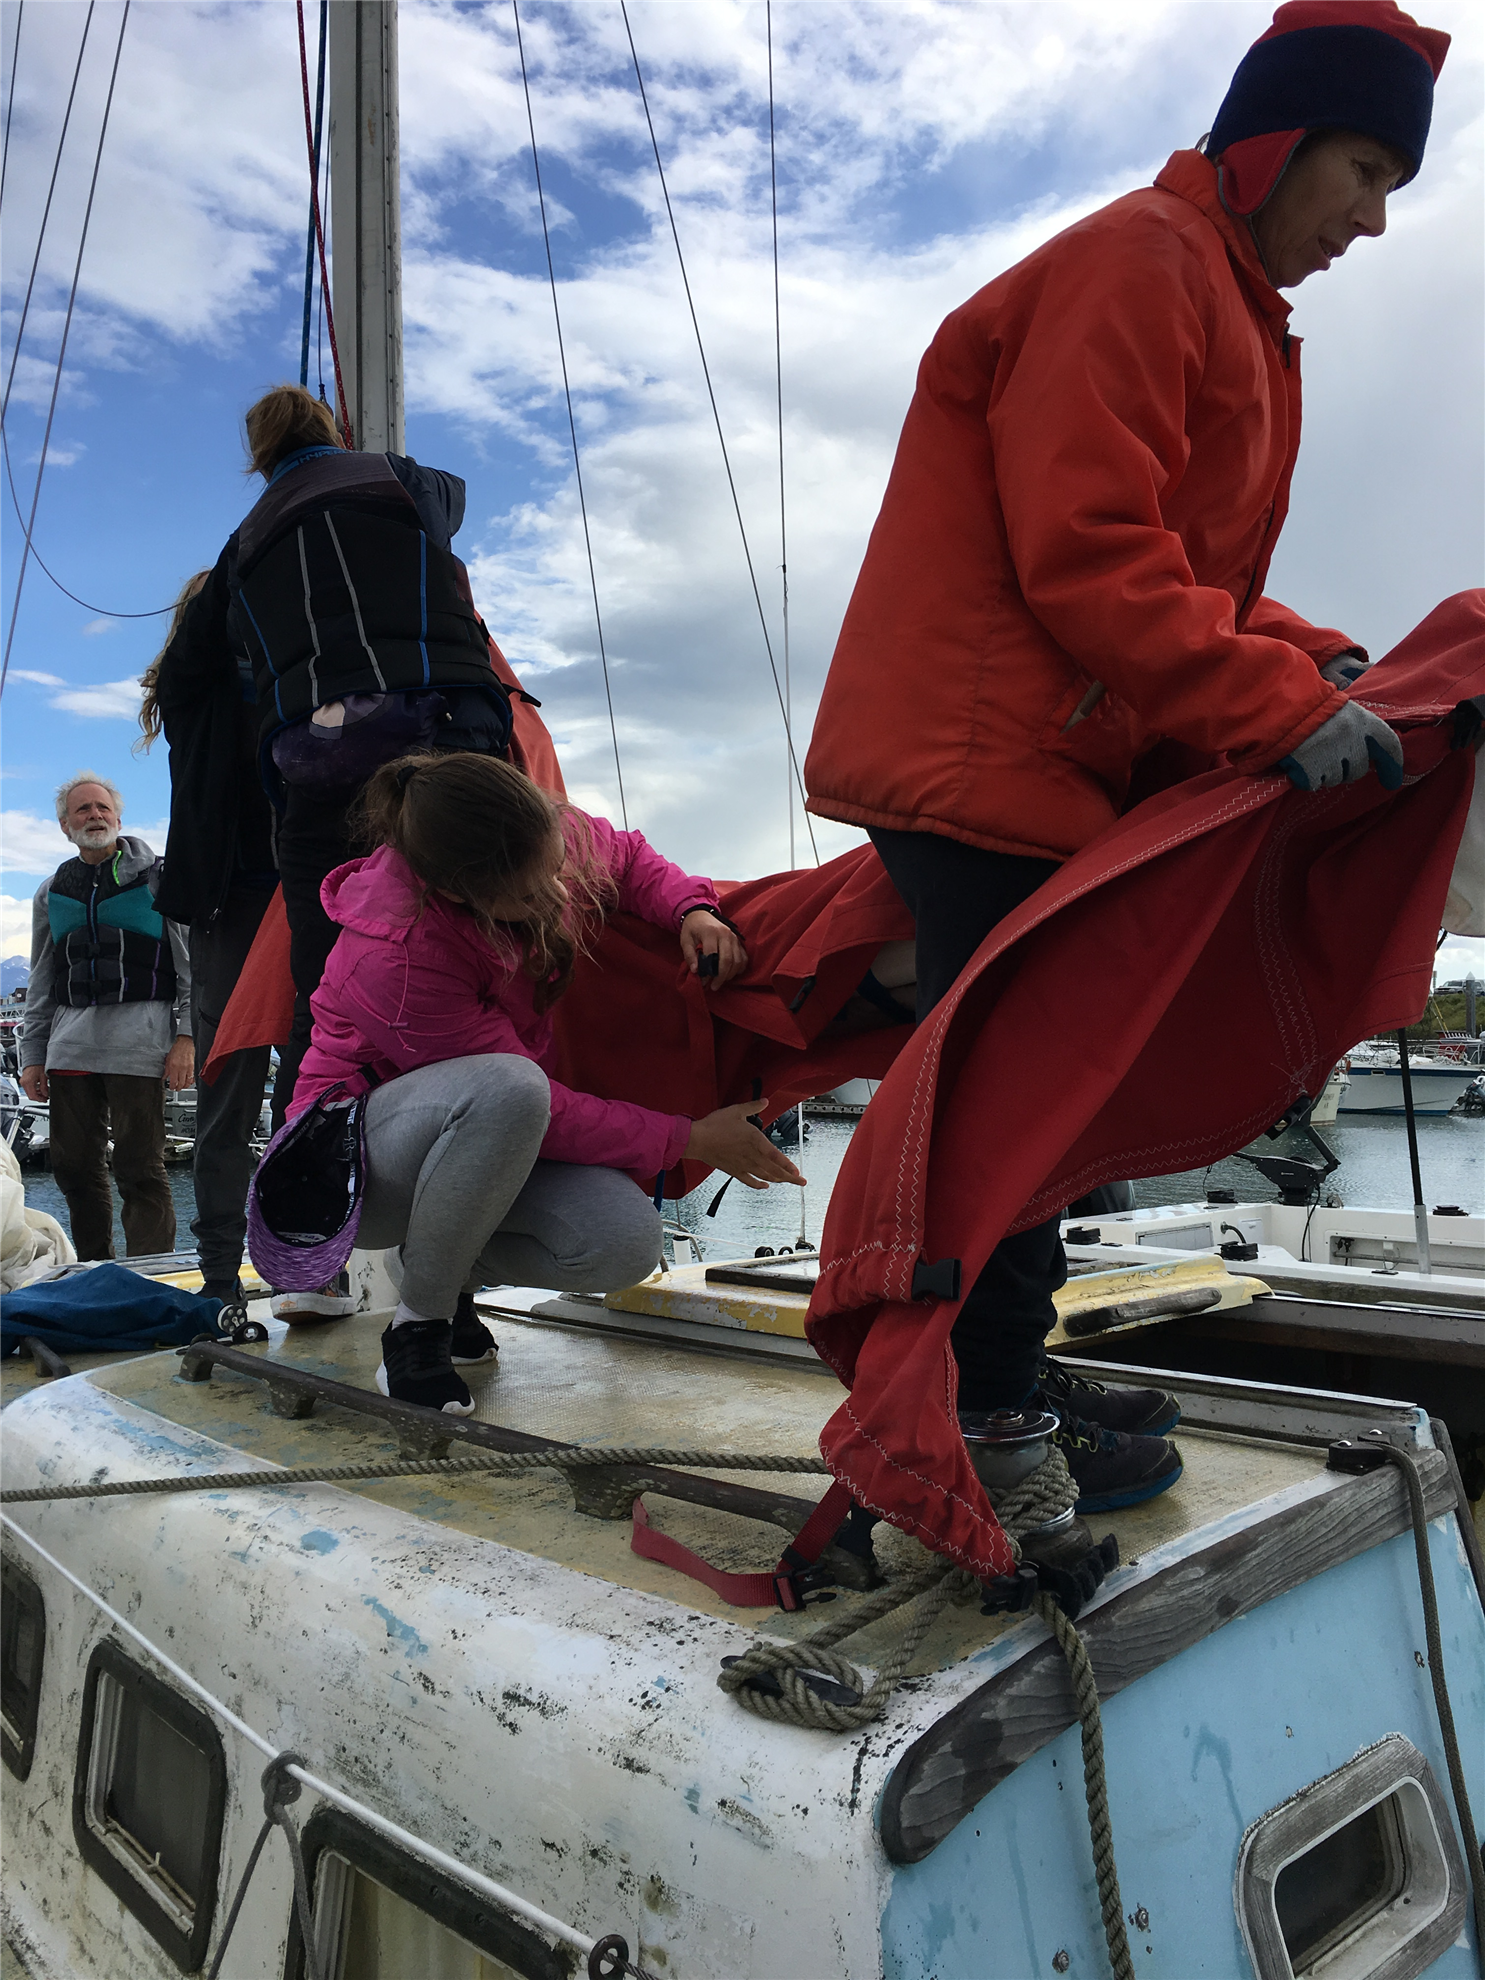 Stories Rotary Club Of Homer Kachemak Bay Tendencies Caps Savage Navy Fireweed Cup September 1st Results The Race Are Not In Yet But Arctica Did Cross Finish Line Second A Hard Fought